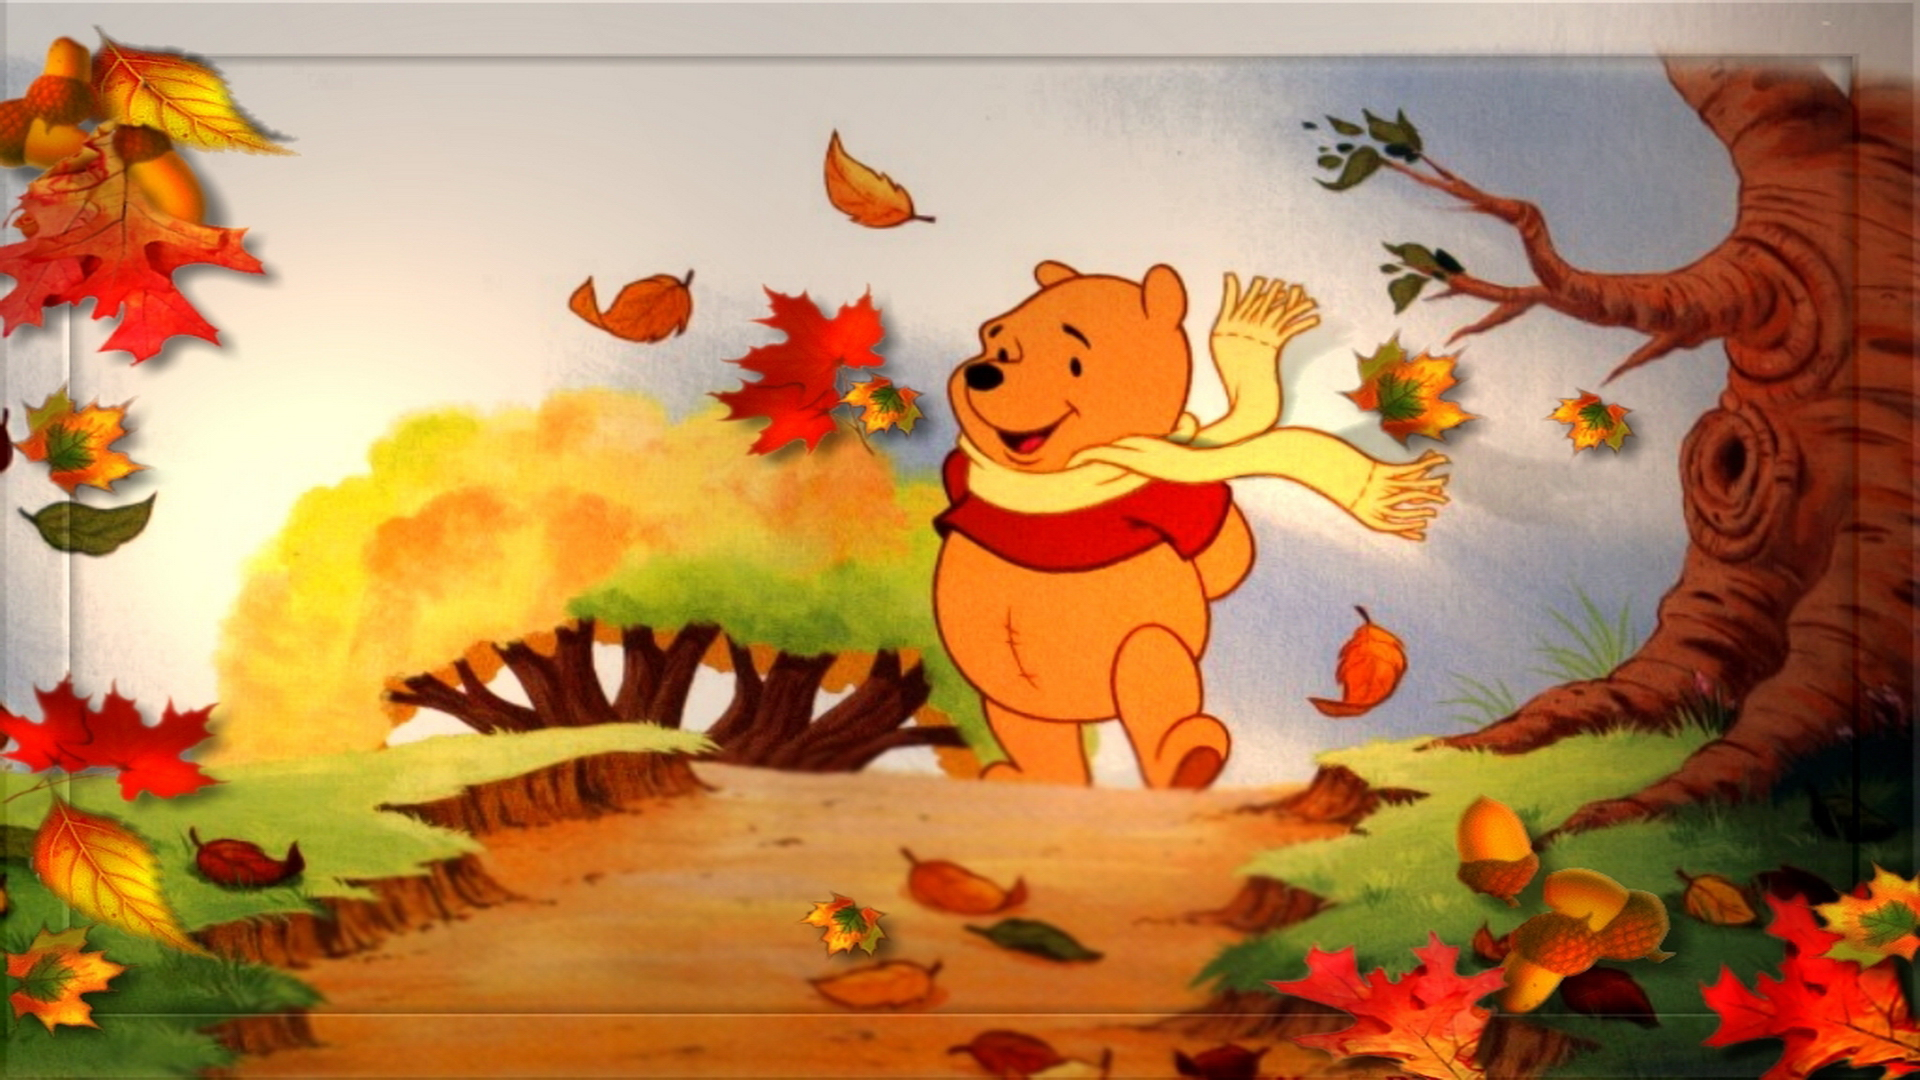 Winnie the Pooh Fall Wallpaper - WallpaperSafari